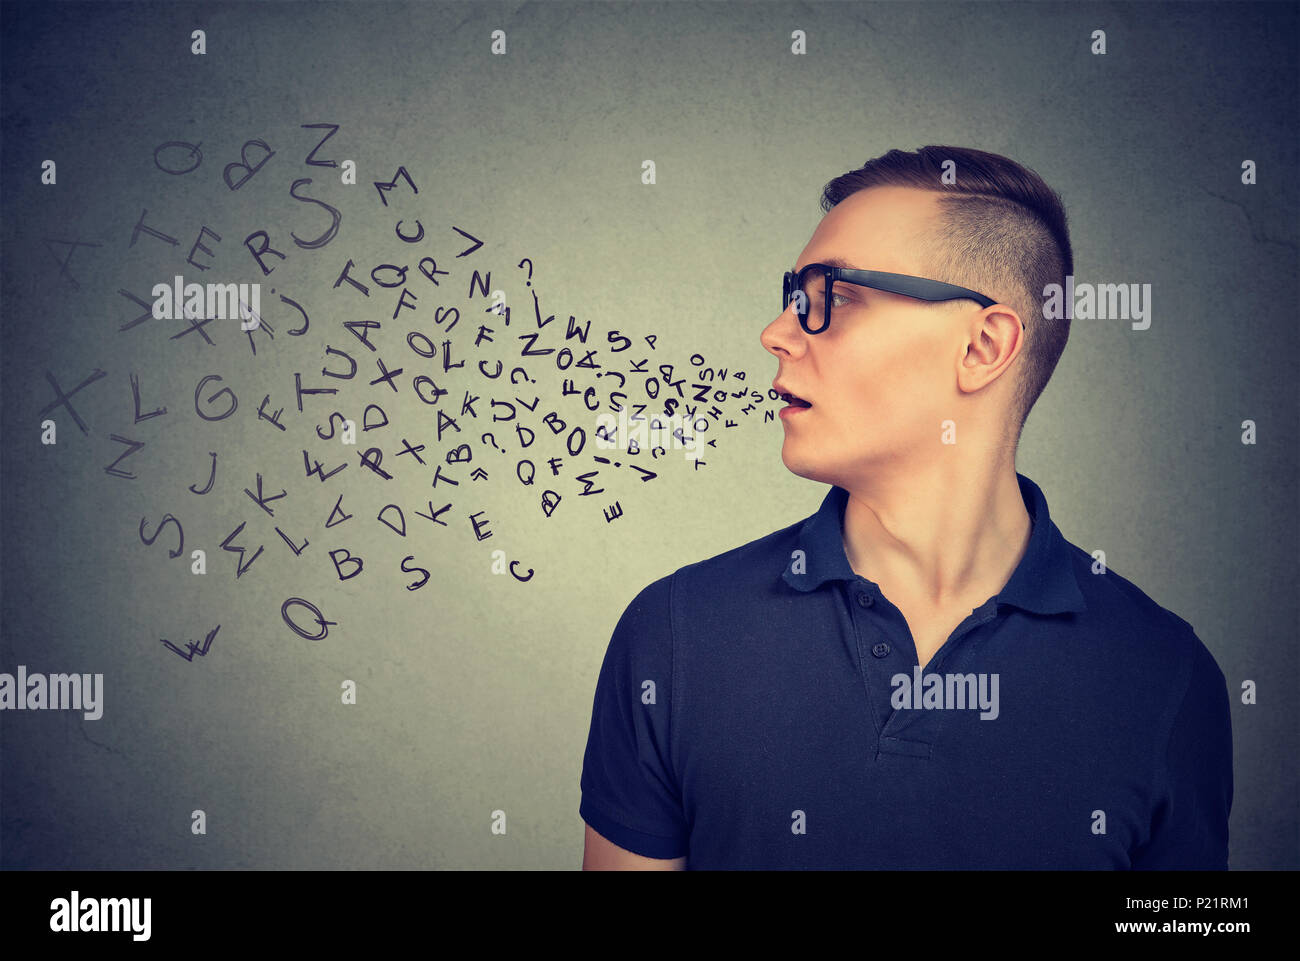 Man in glasses talking with alphabet letters coming out of his mouth. Communication, information, concept Stock Photo